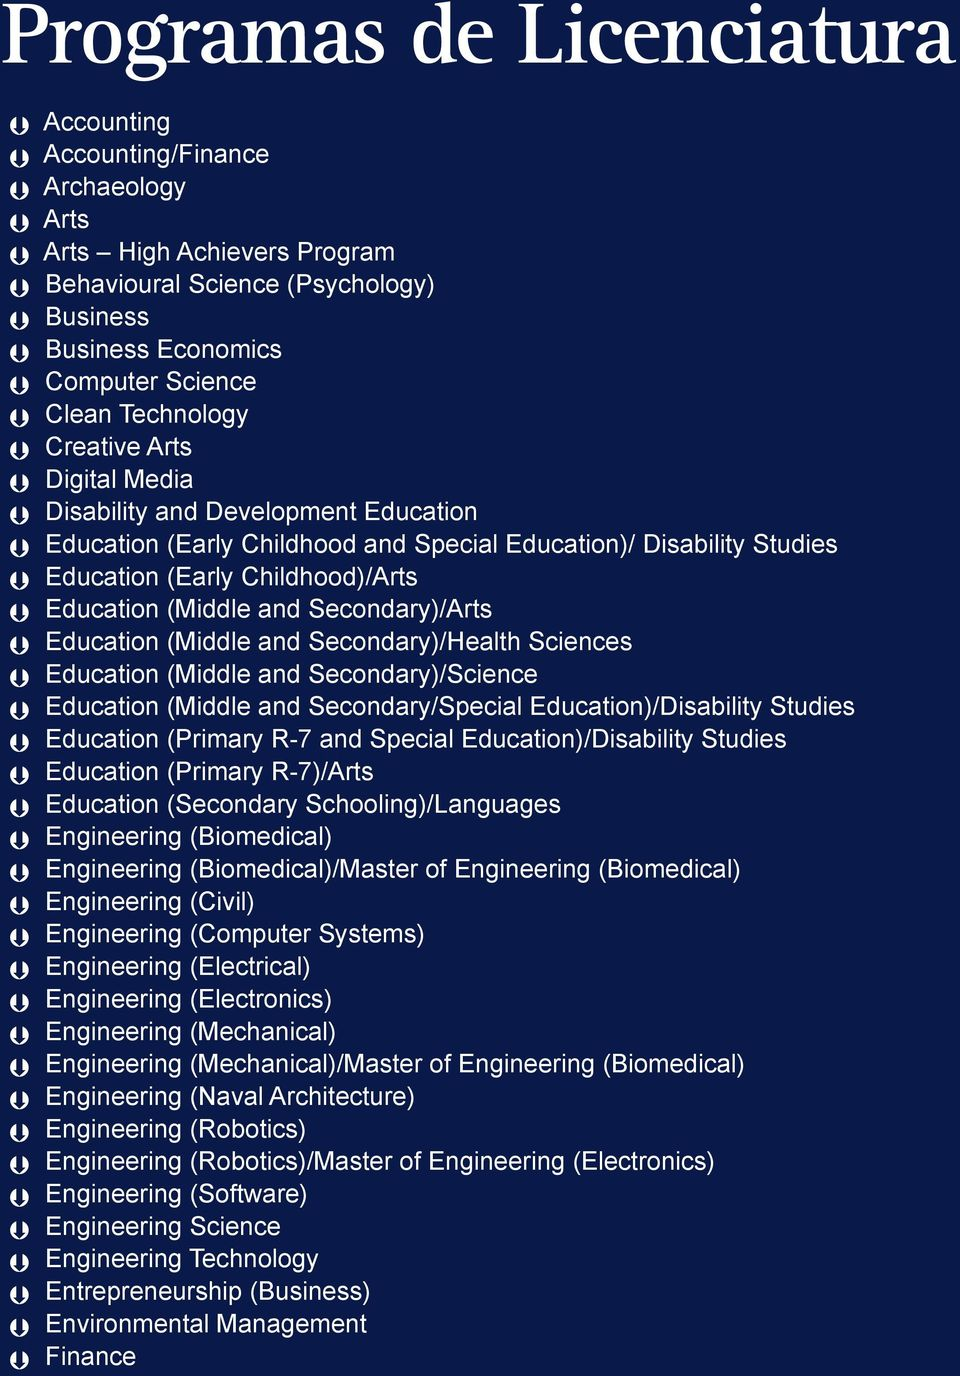 Secondary)/Arts Education (Middle and Secondary)/Health Sciences Education (Middle and Secondary)/Science Education (Middle and Secondary/Special Education)/Disability Studies Education (Primary R-7